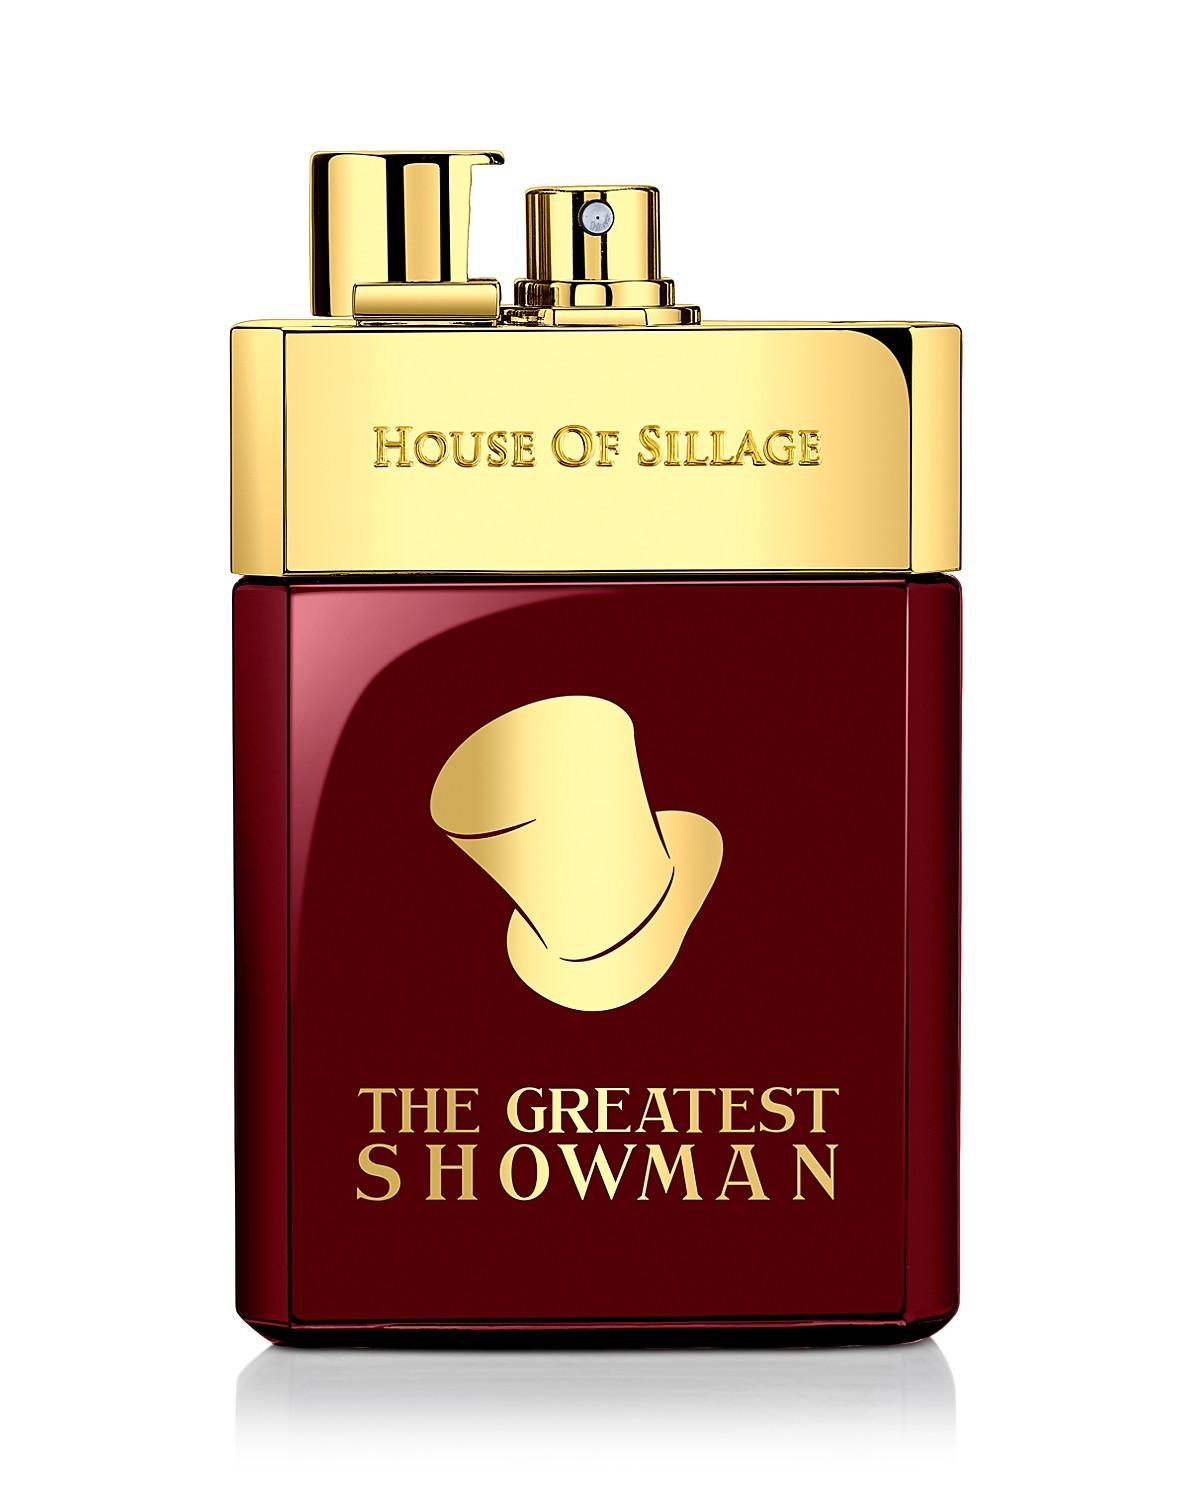 THE GREATEST SHOWMAN by HOUSE OF SILLAGE 5ml Travel Spray Parfum FOR HIM Limited